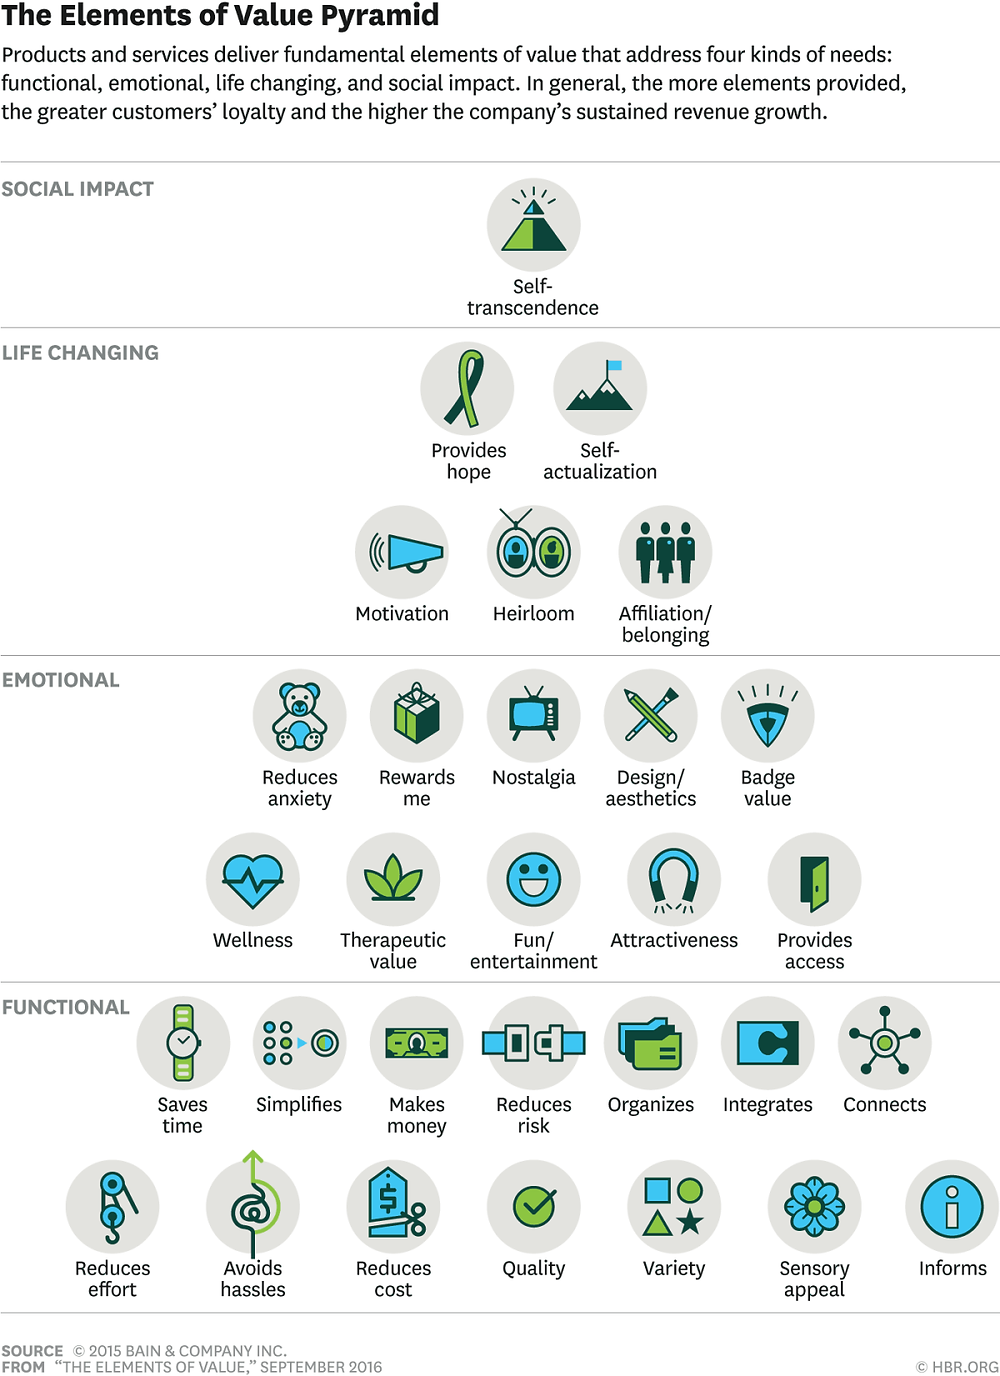 Elements of value pyramid